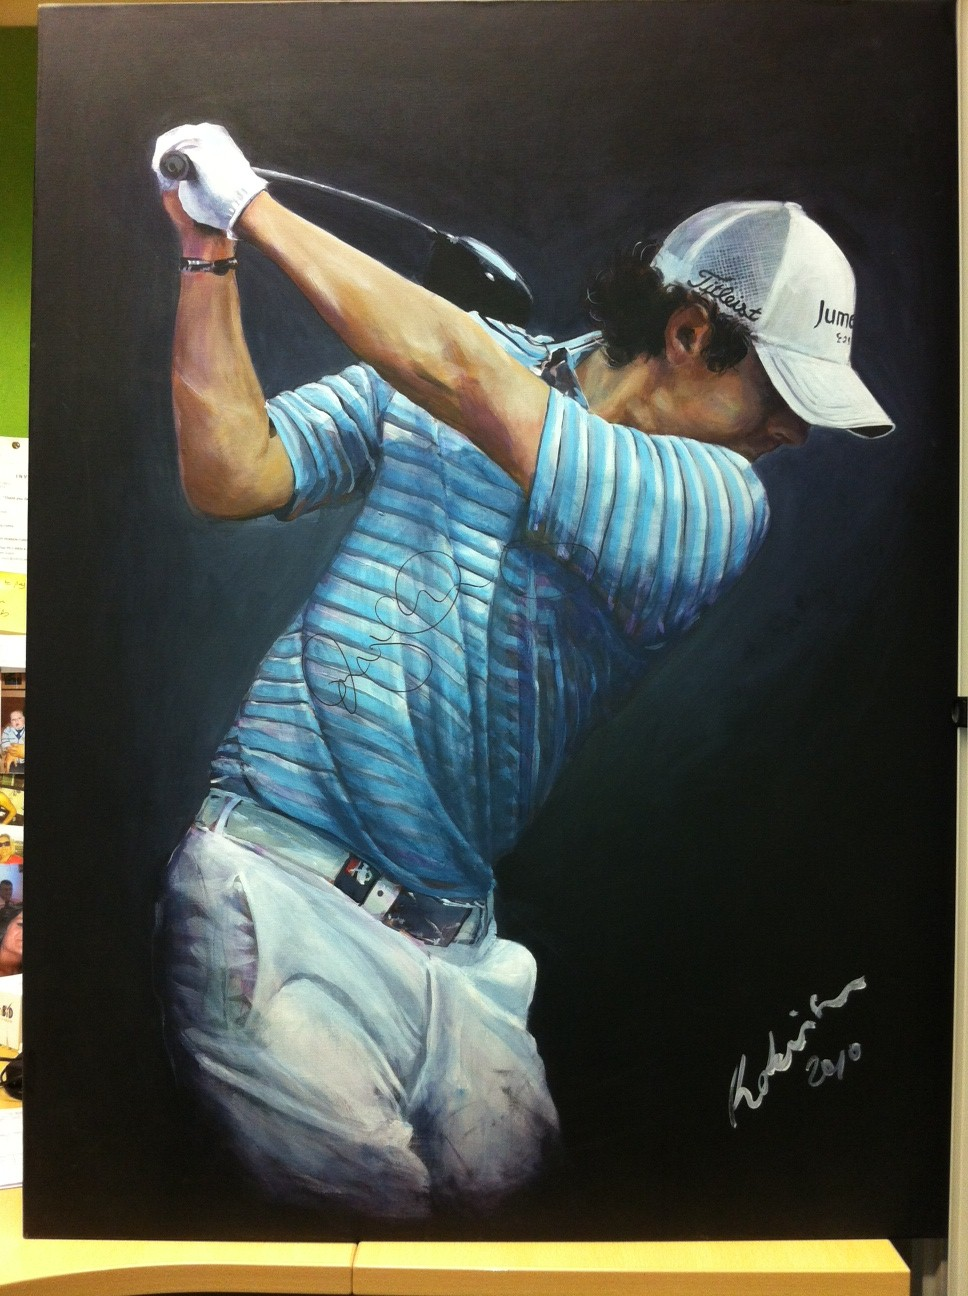 ... Childrens christmas wish list rory mcilroy's only gone and